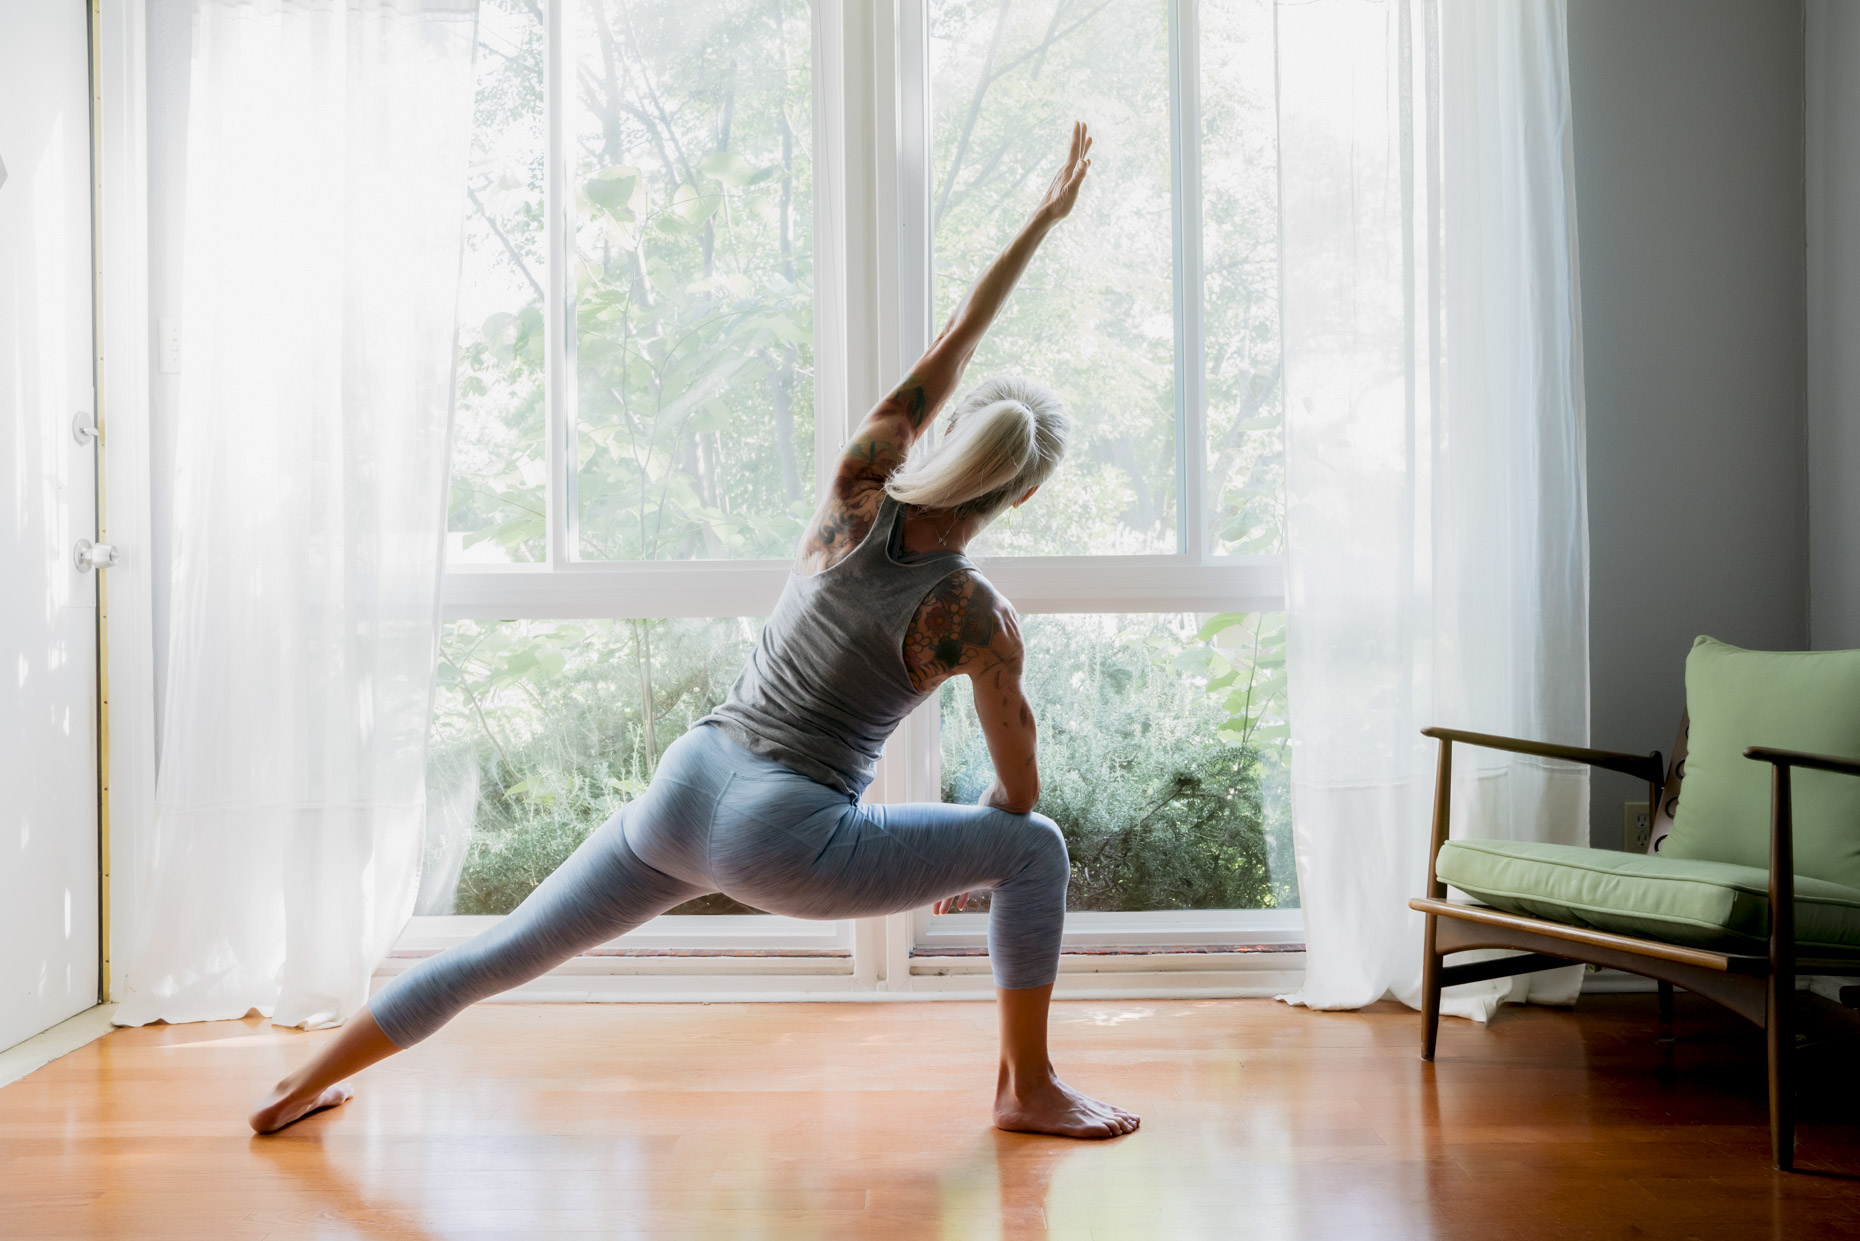 Inti St Clair photo of mature woman with grey hair practicing yoga in living room of home